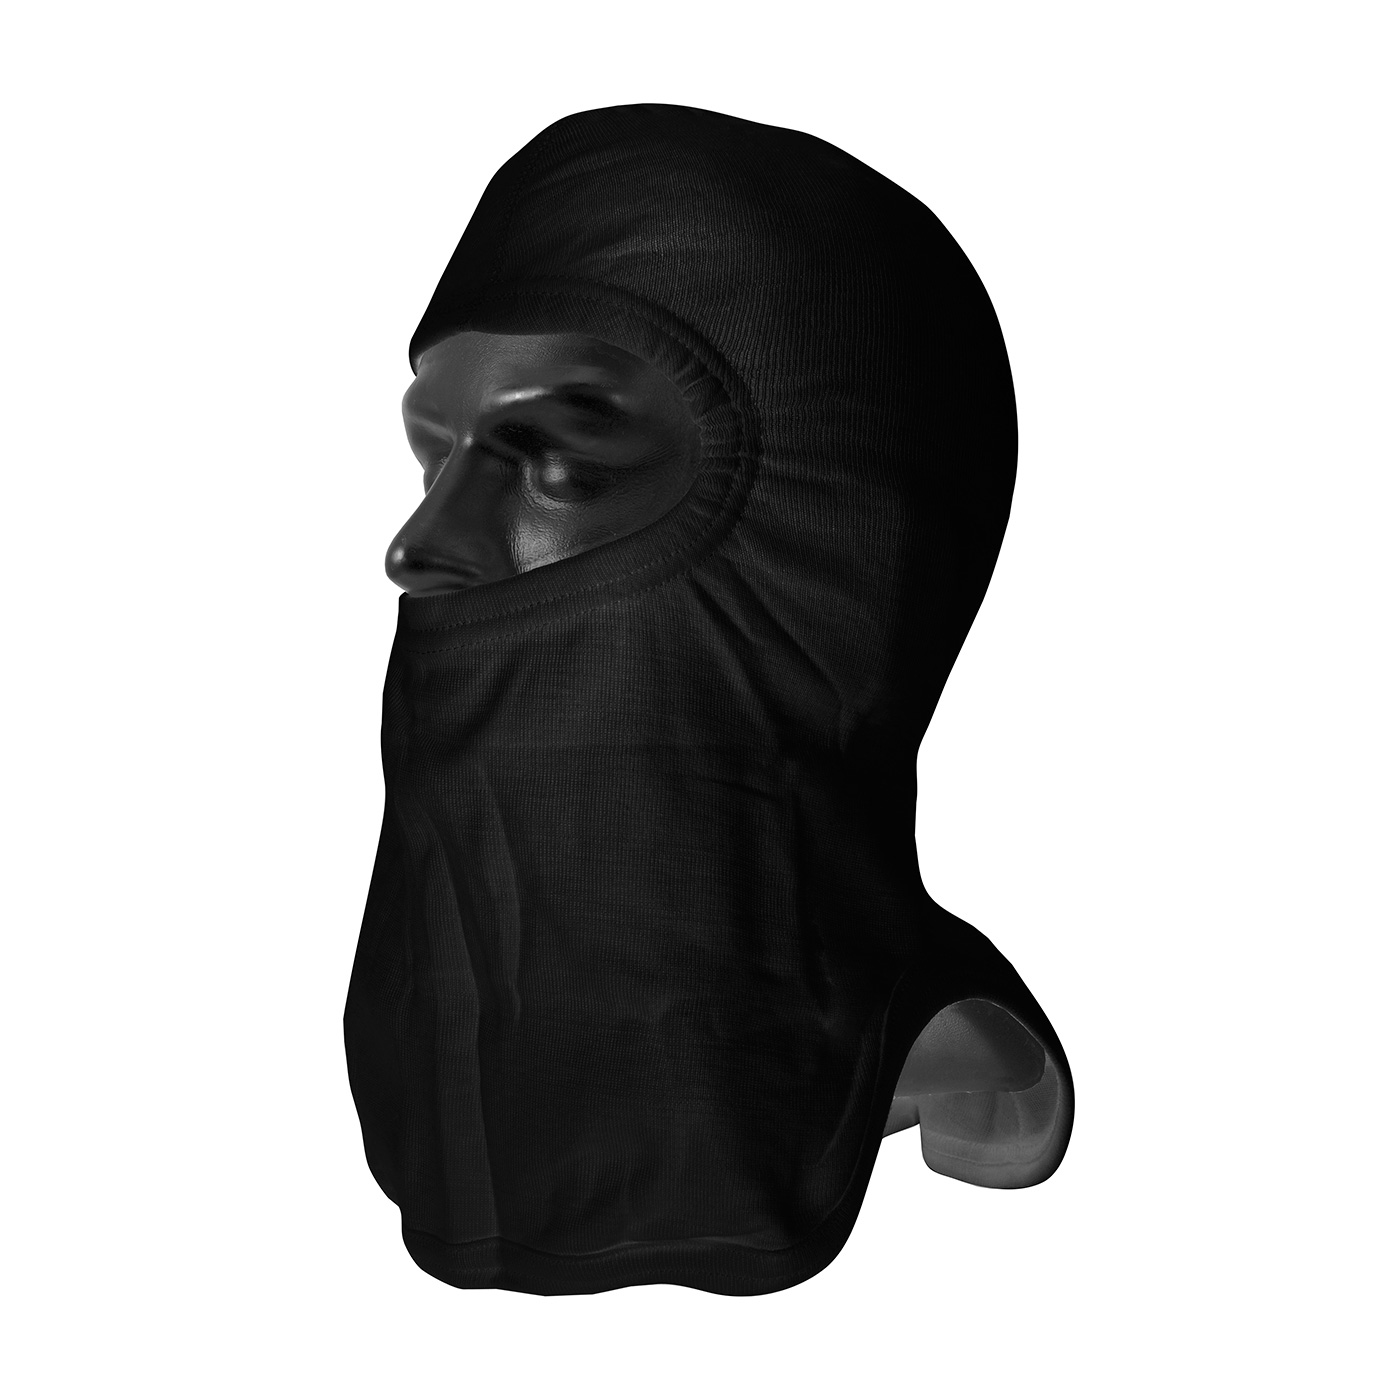 PIP® Black Nomex® / Lenzing FR Hood with Tri-Cut Design - Full Face #906-2080NOL7BLK